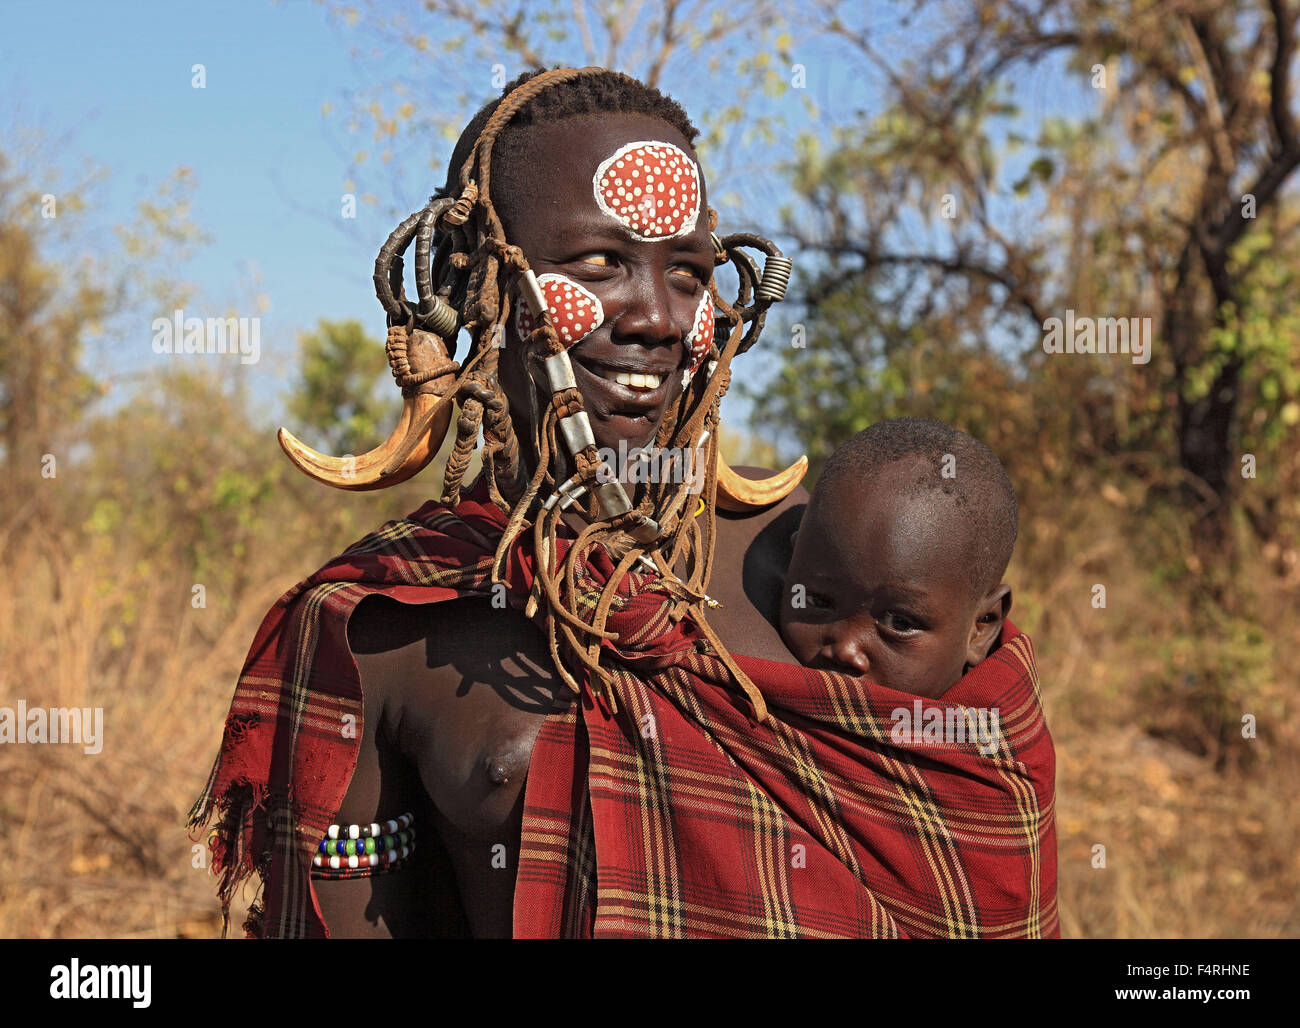 in Maco National Park, Mursi, Mursi Woman with Baby, painted skin and headdress - Stock Image